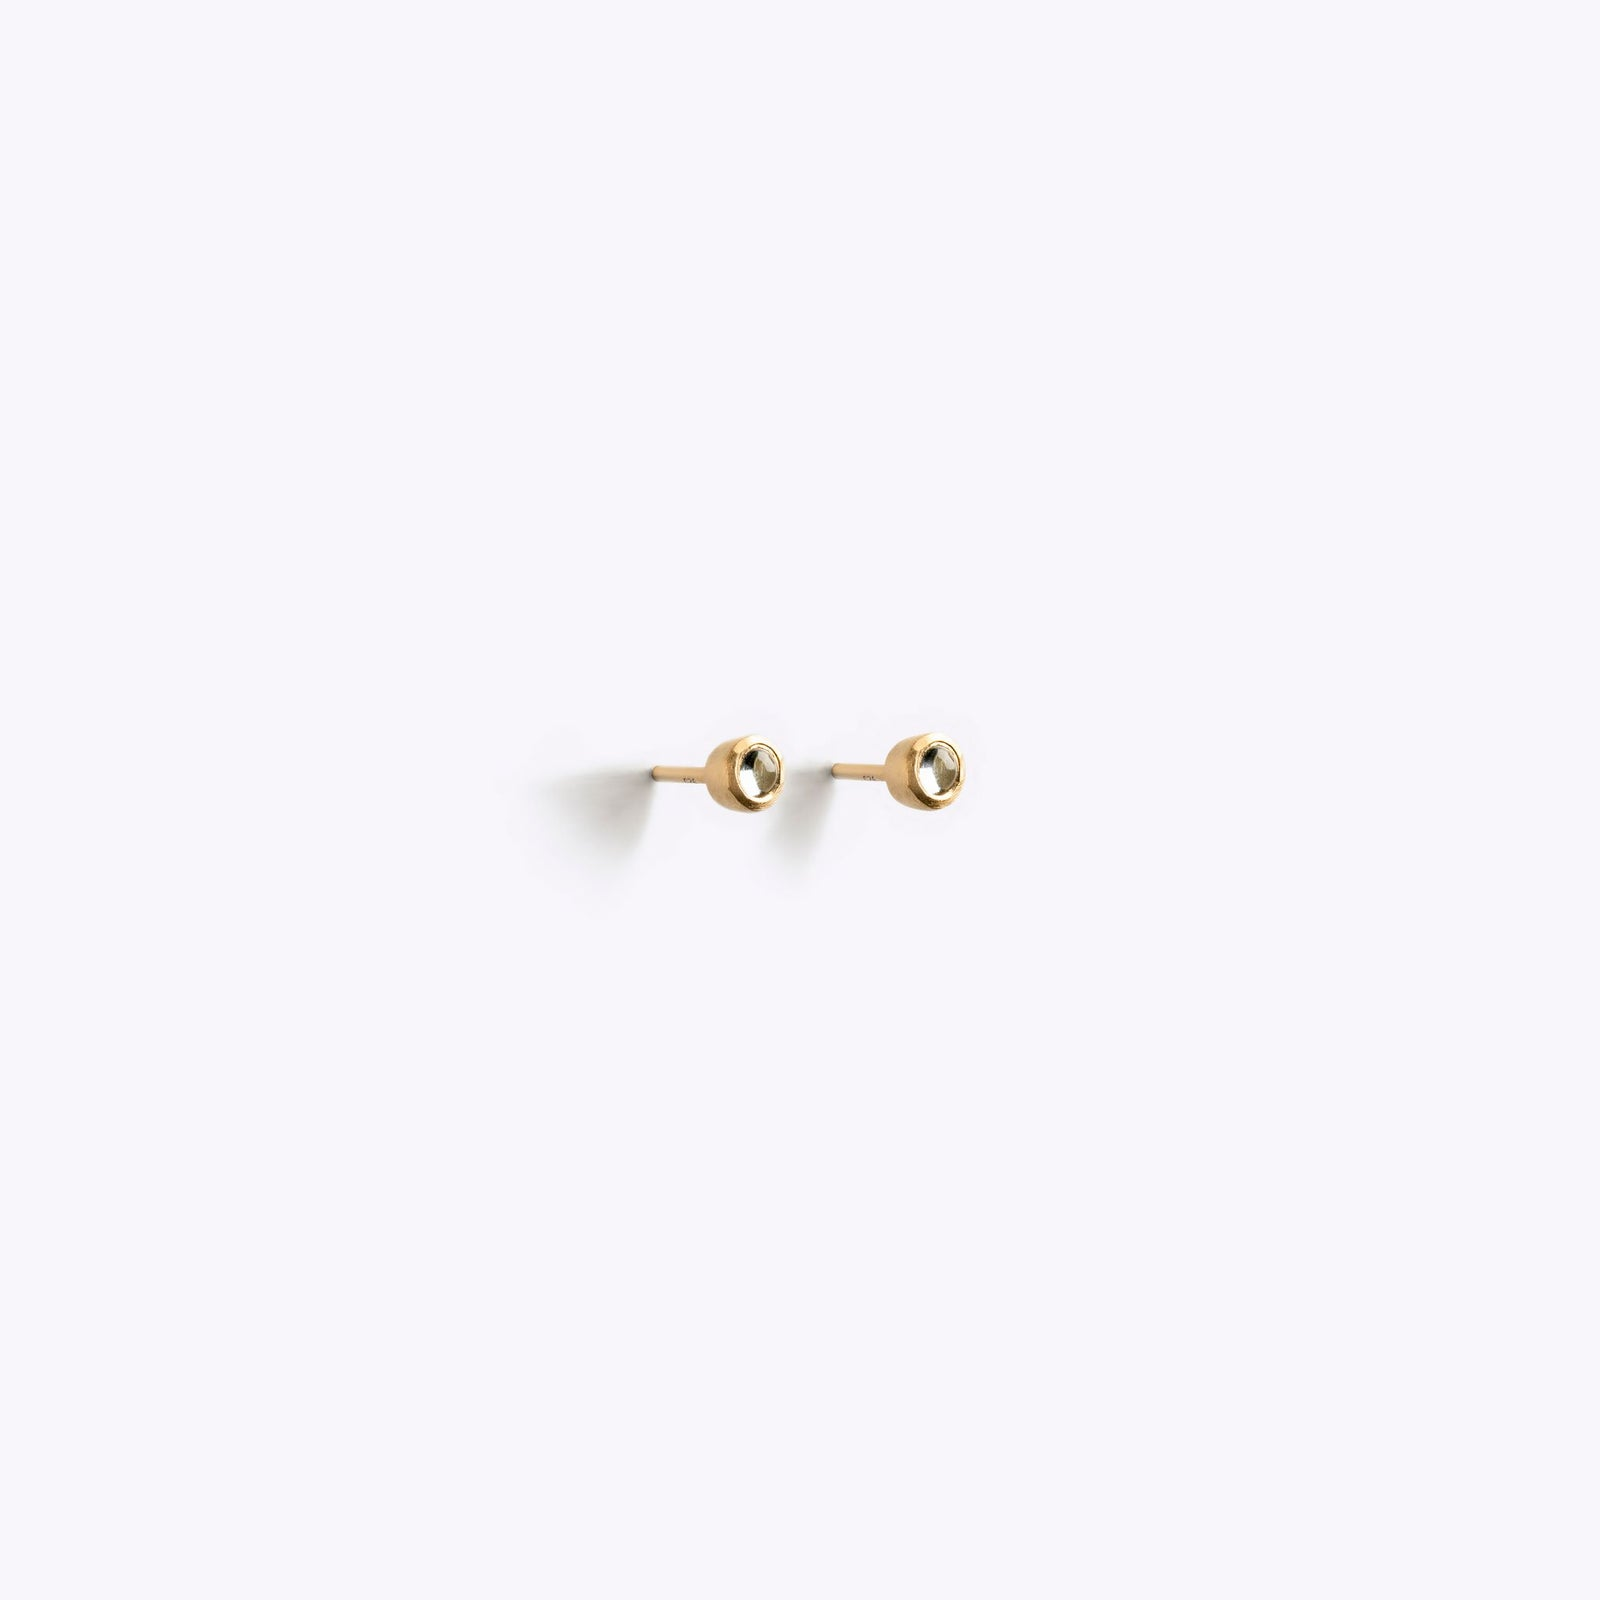 Wanderlust Life Ethically Handmade jewellery made in the UK. Minimalist gold and fine cord jewellery. November birthstone gold stud earrings. Topaz gemstone earrings.